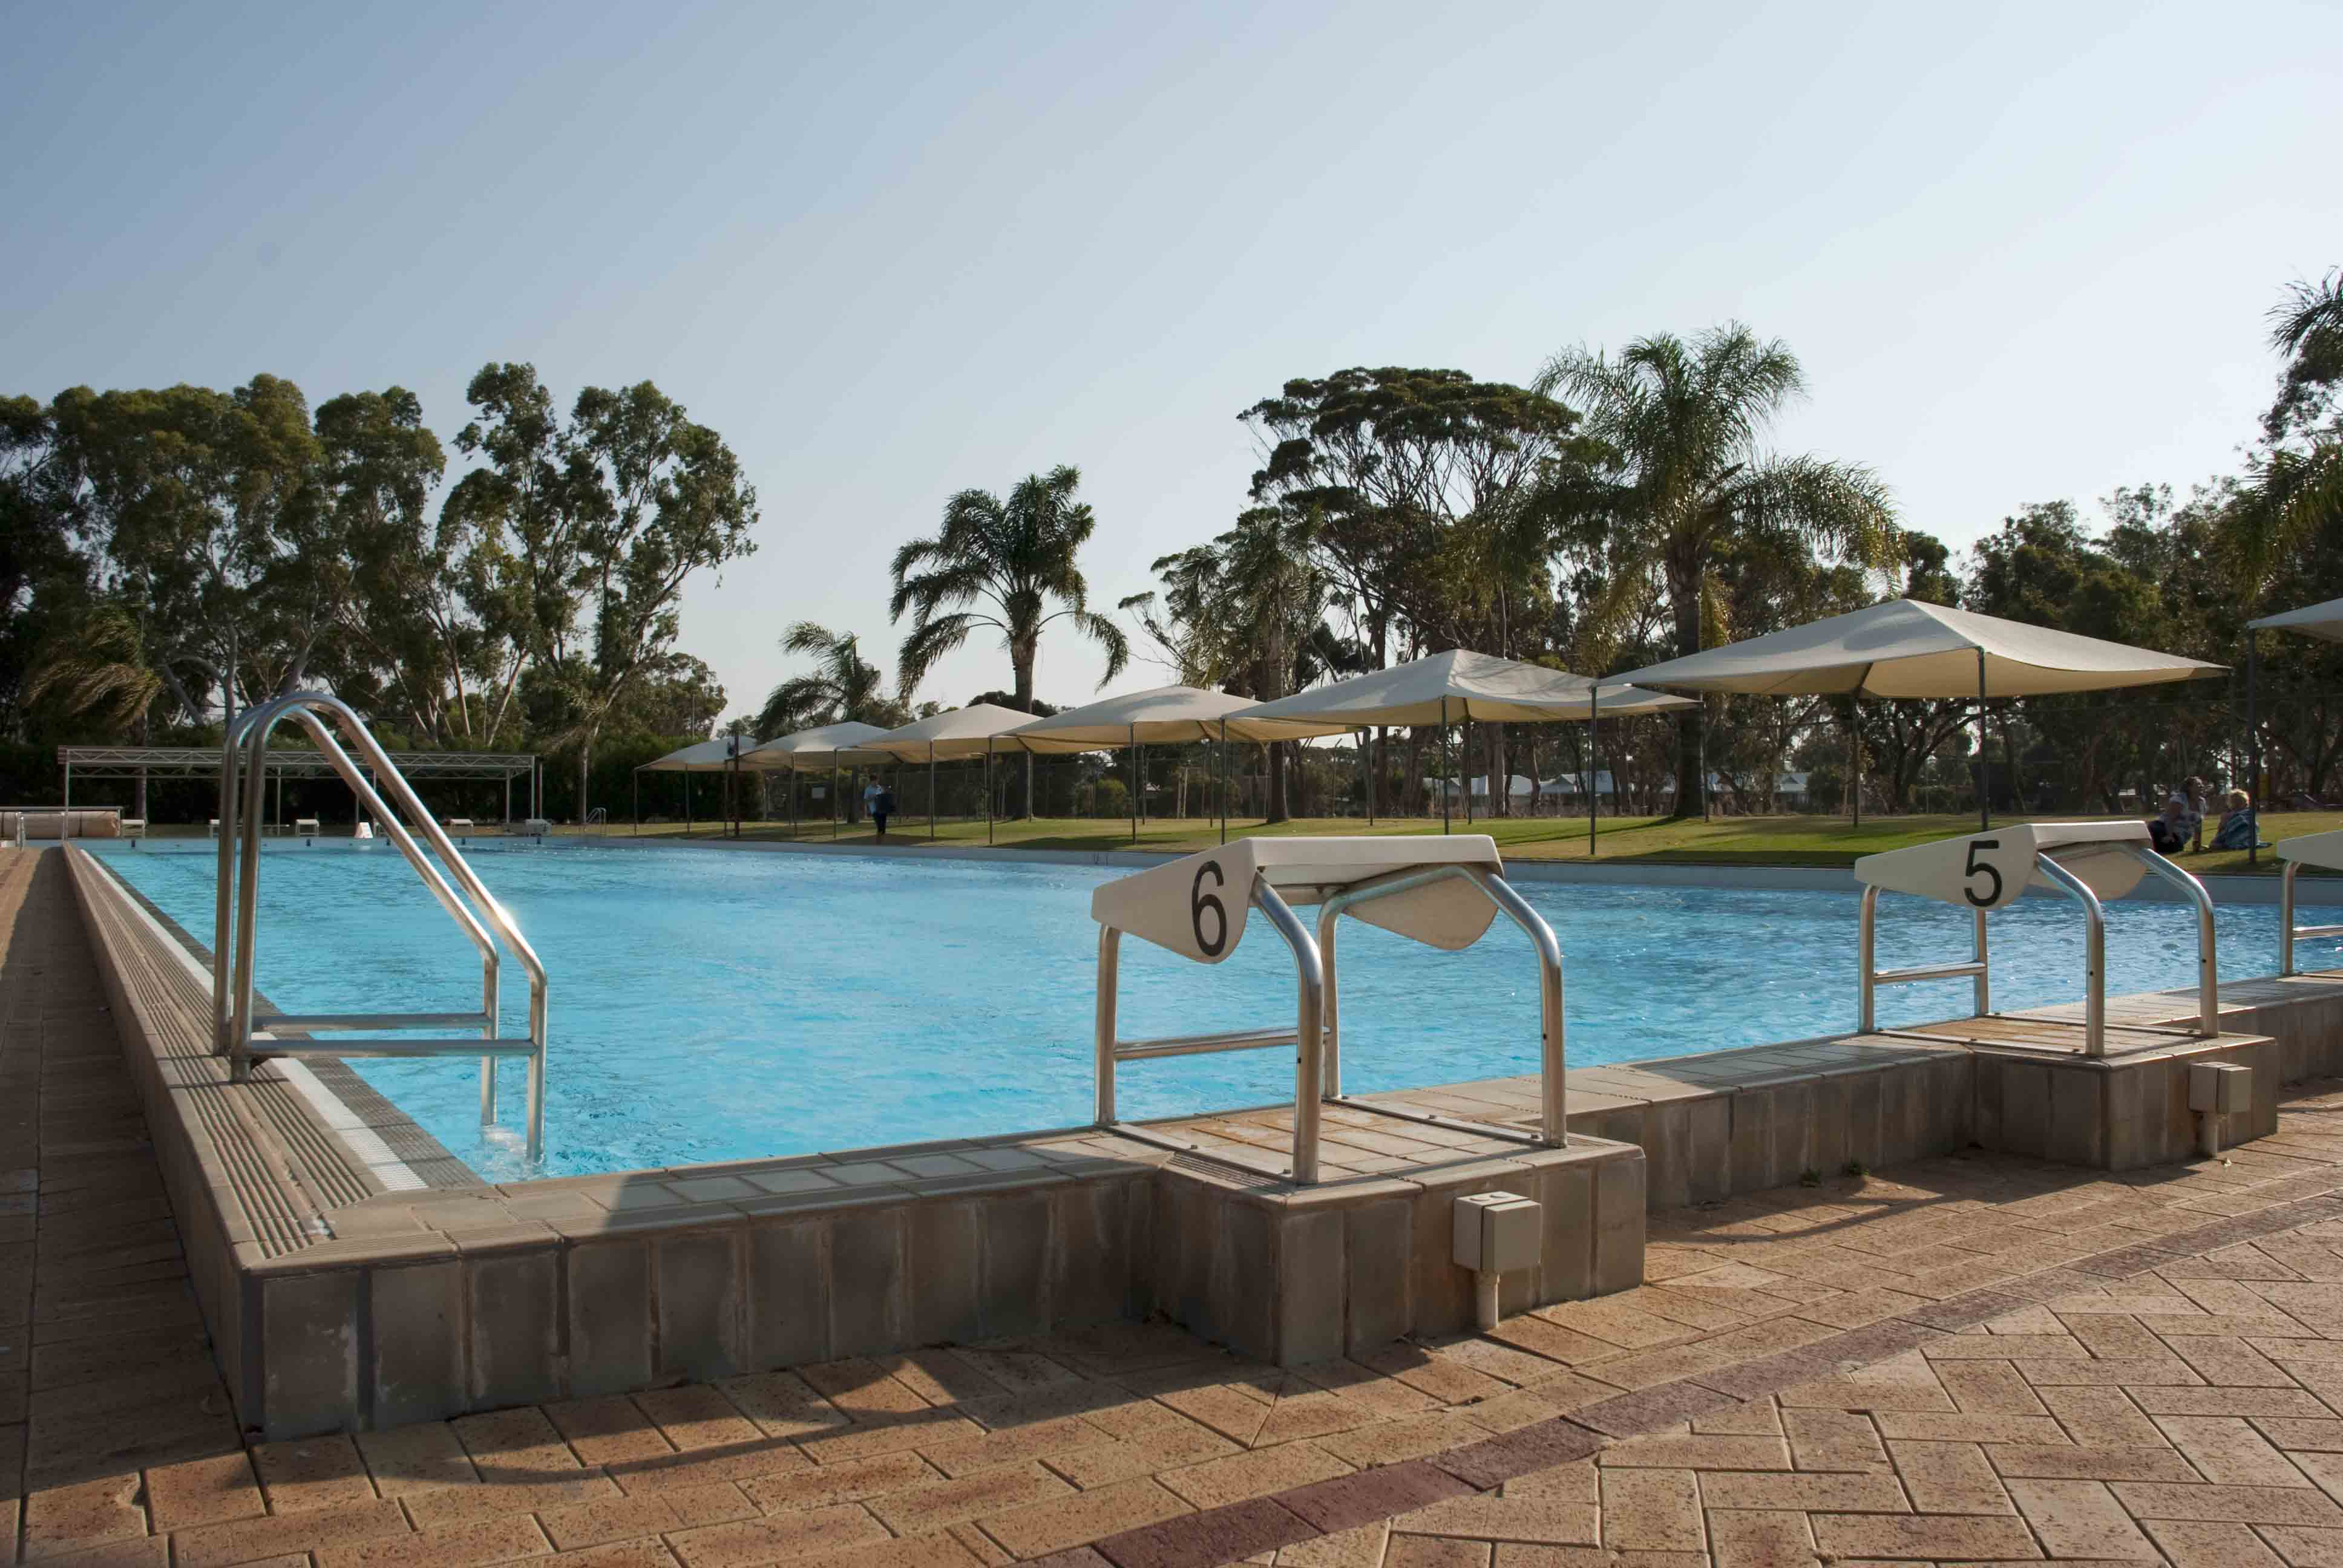 Moora Swimming Pool